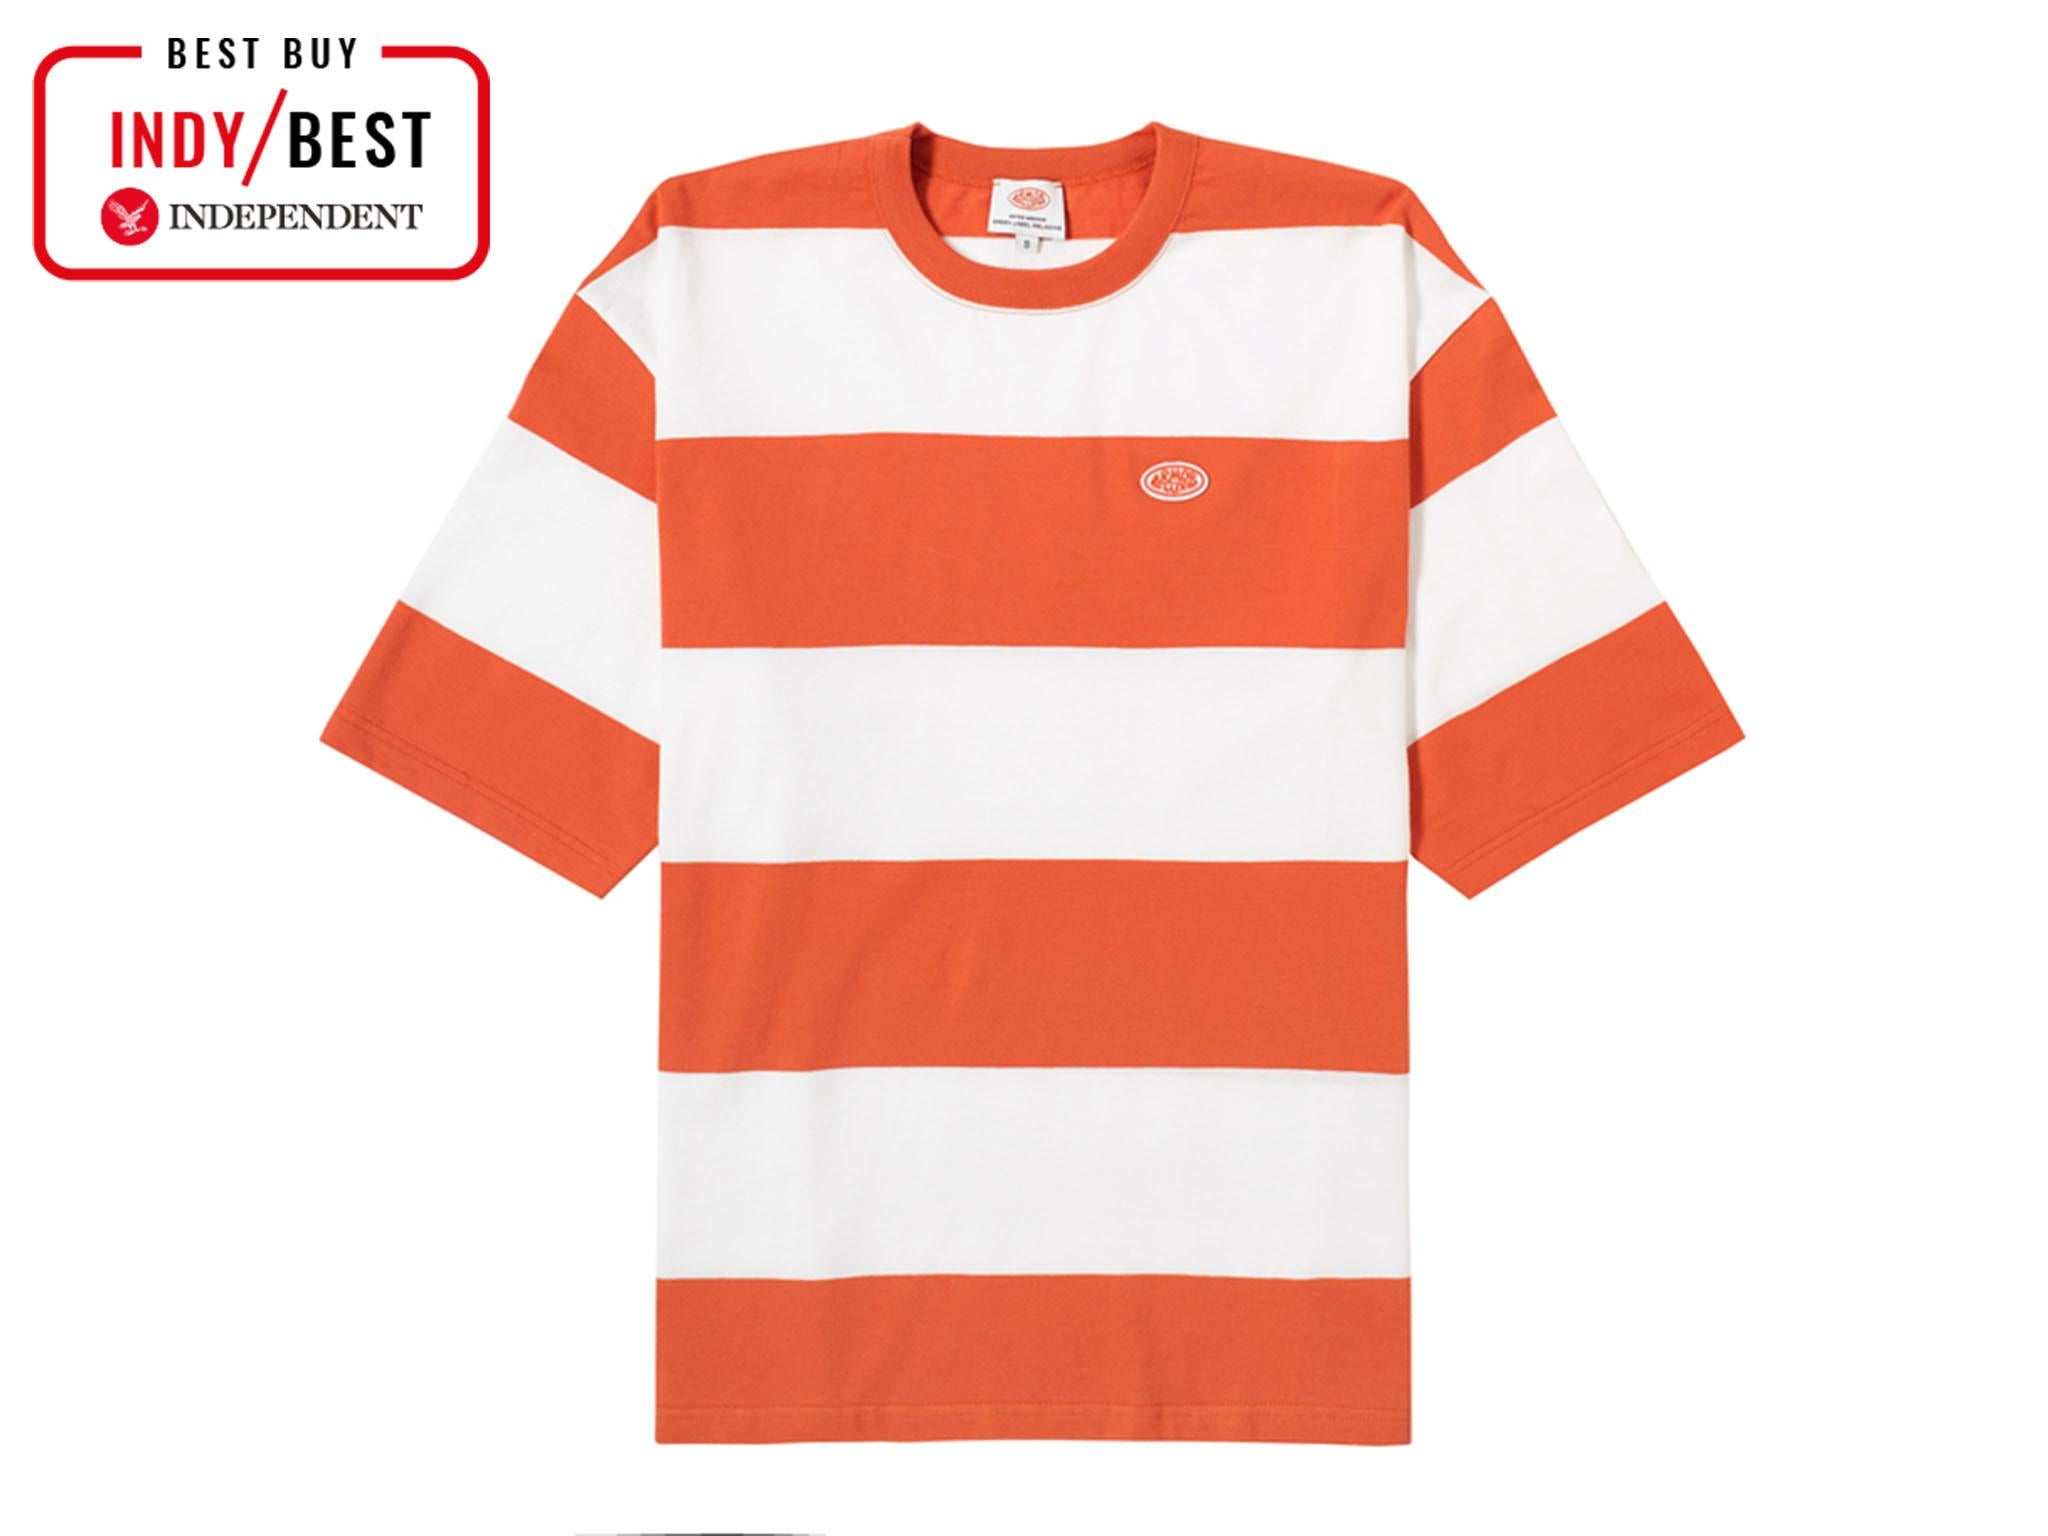 b8be13e7 Best men's T-shirts for the perfect fit, style and quality